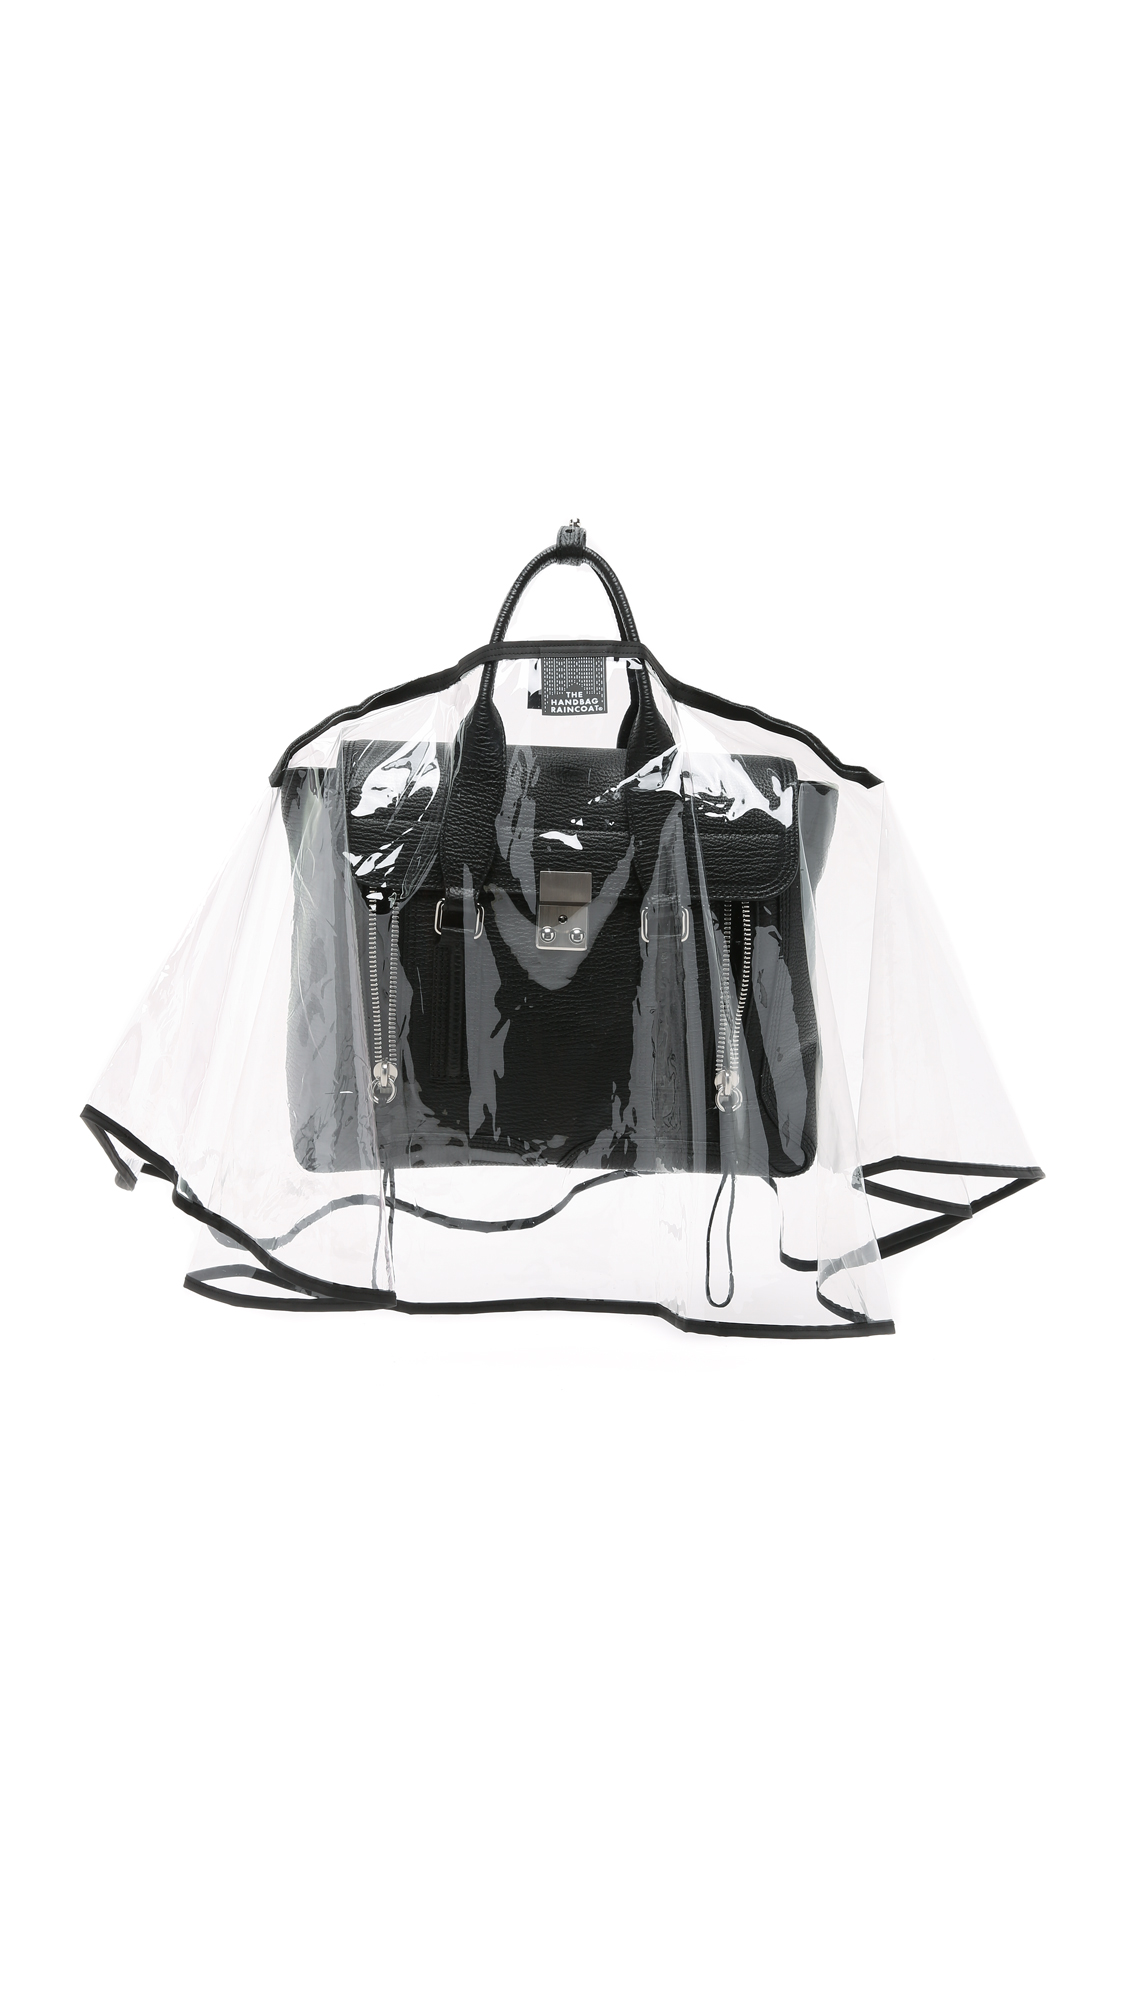 The Handbag Raincoat Large City Slicker Handbag Raincoat